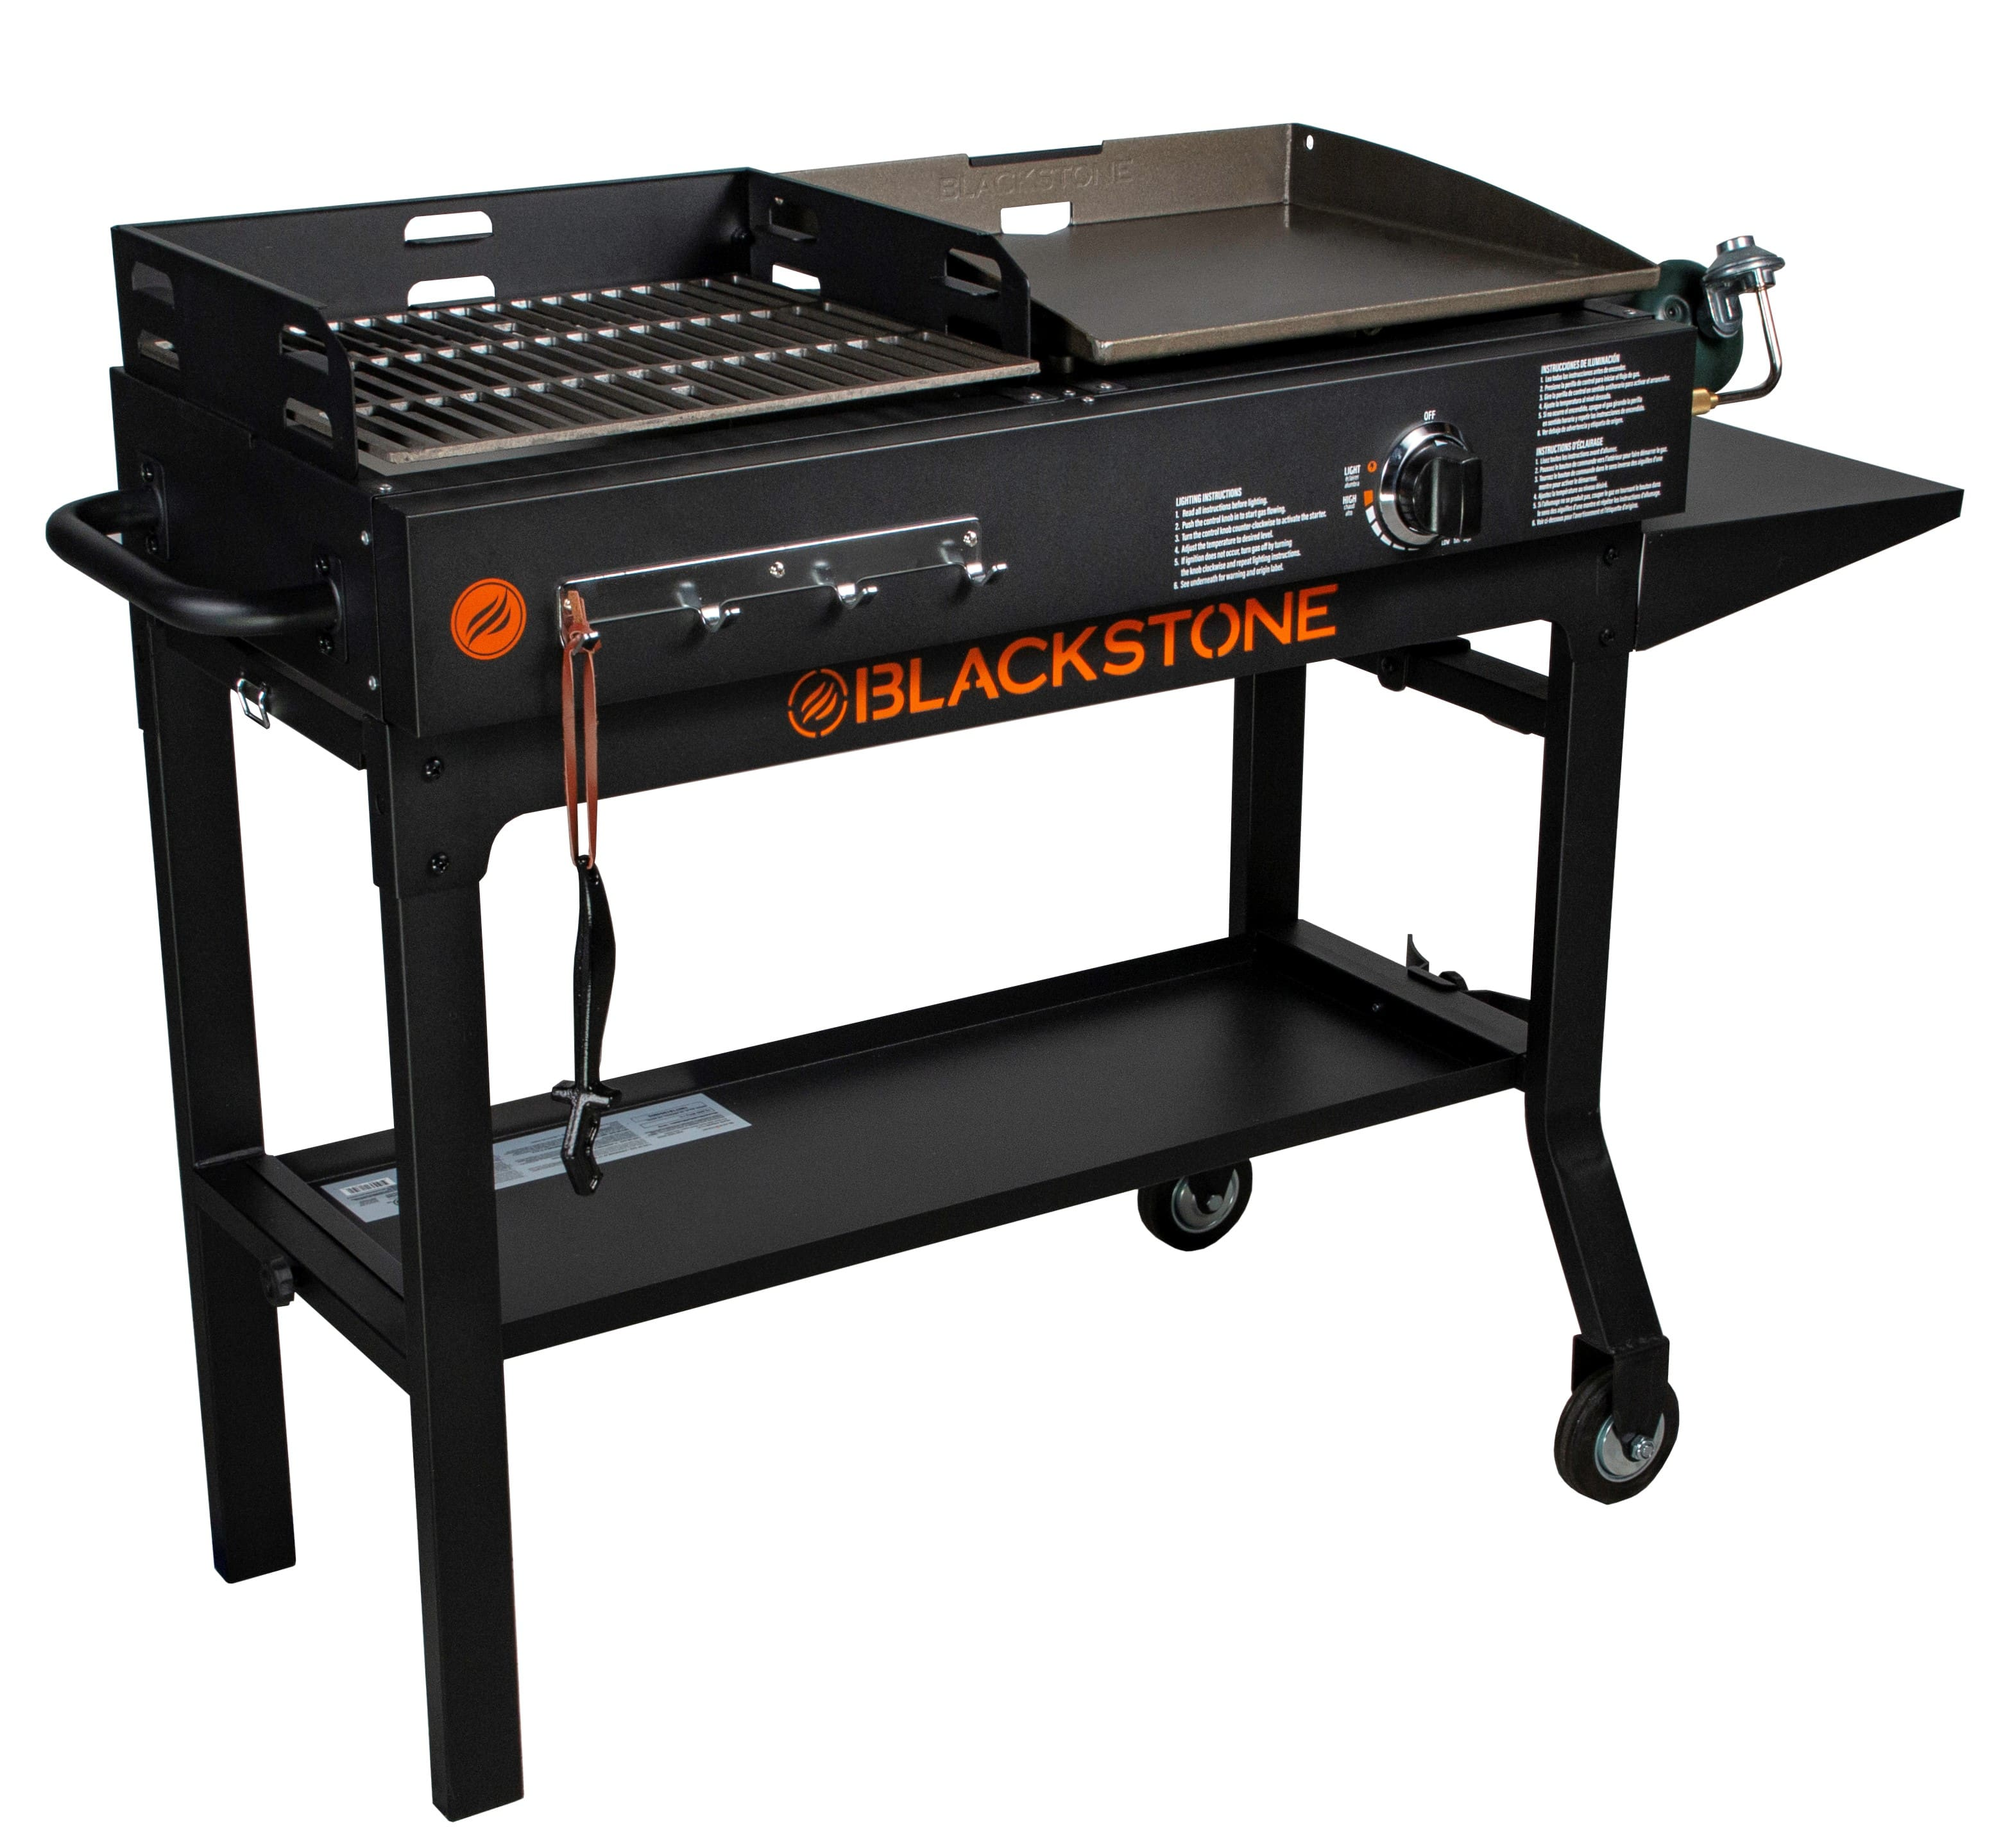 Blackstone Griddle & Charcoal Grill Combo $89 YMMV